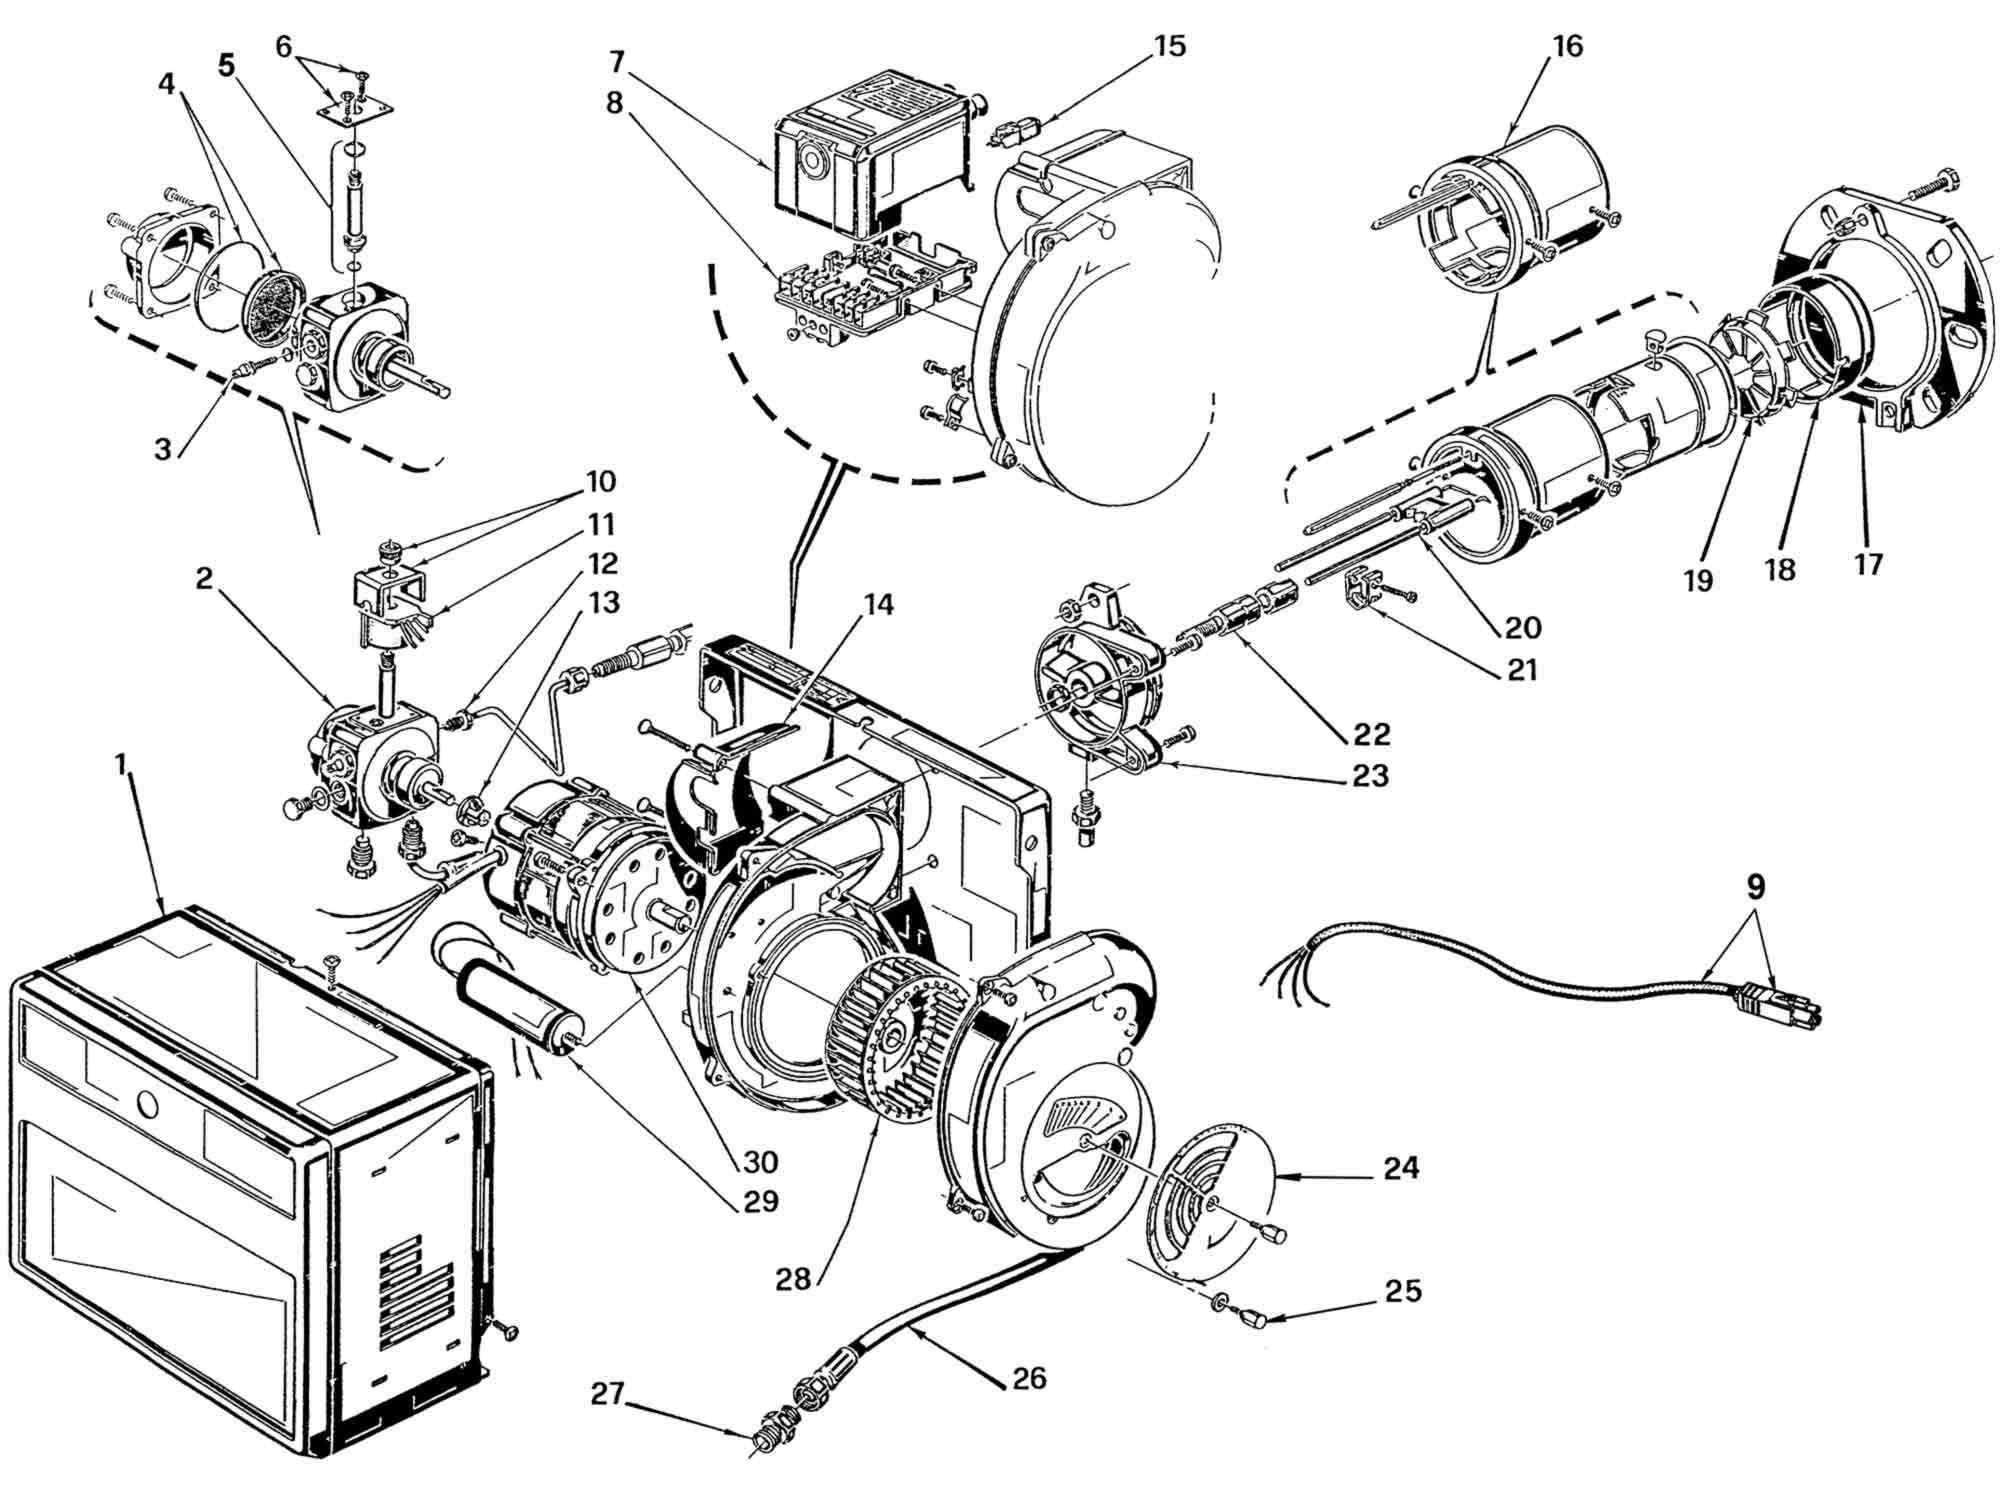 hight resolution of riello r40 g7 burner parts wiring diagram kirby ultimate g